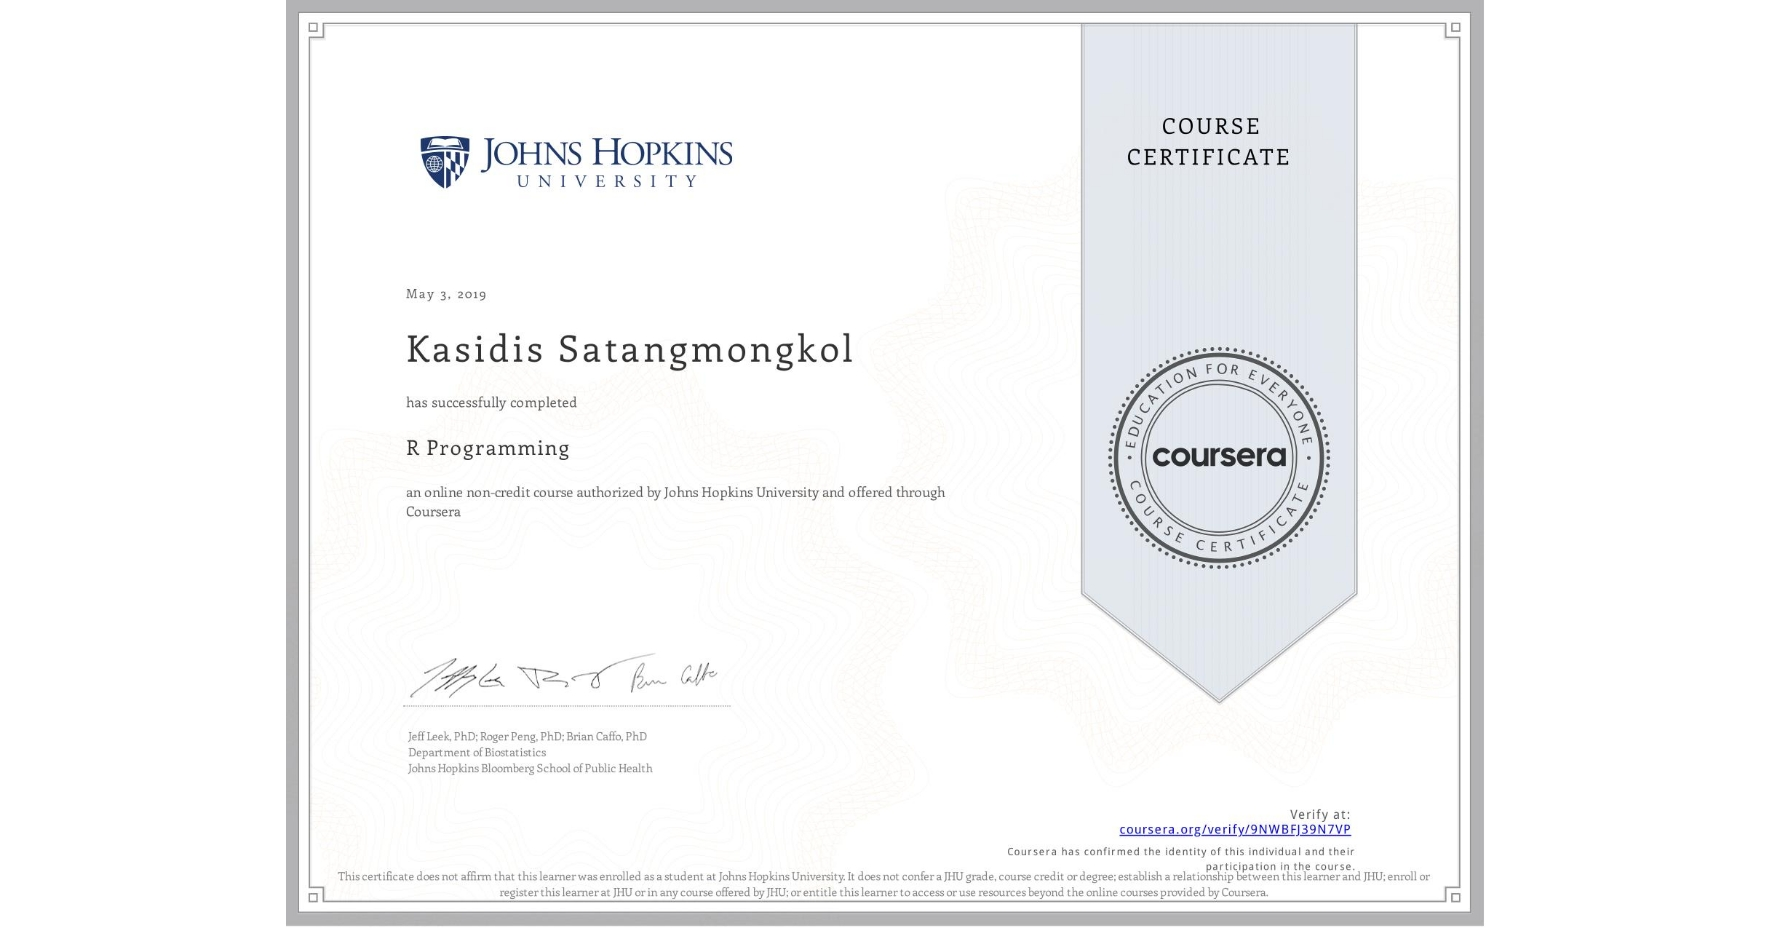 View certificate for Kasidis Satangmongkol, R Programming, an online non-credit course authorized by Johns Hopkins University and offered through Coursera